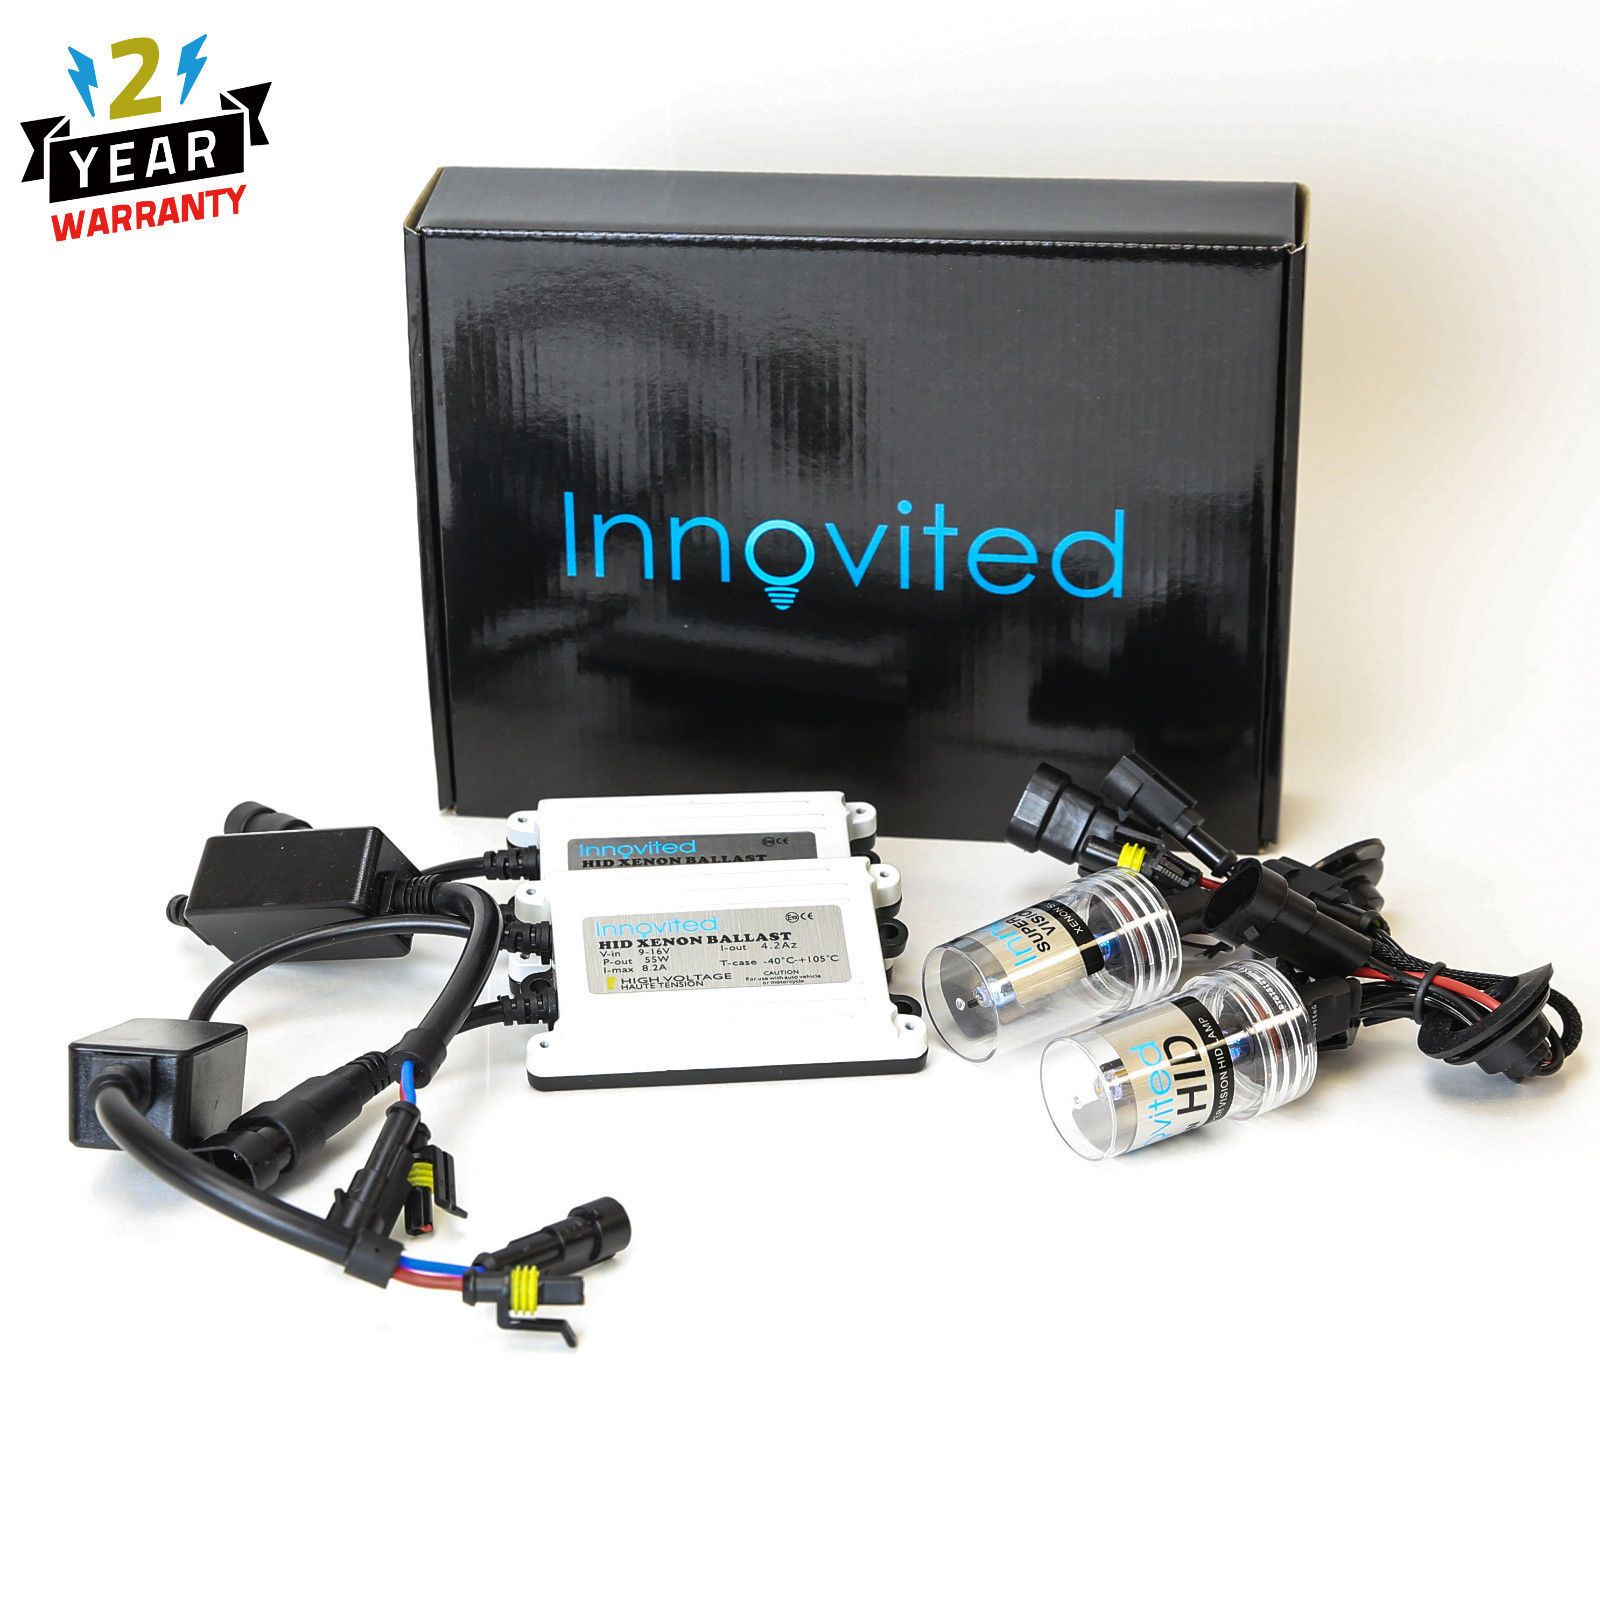 hight resolution of http motorcyclespareparts net innovited ac 55w hid kit h4 h7 h11 h13 9003 9005 9006 9007 6000k hi lo bi xenon innovited ac 55w hid kit h4 h7 h11 h13 9003